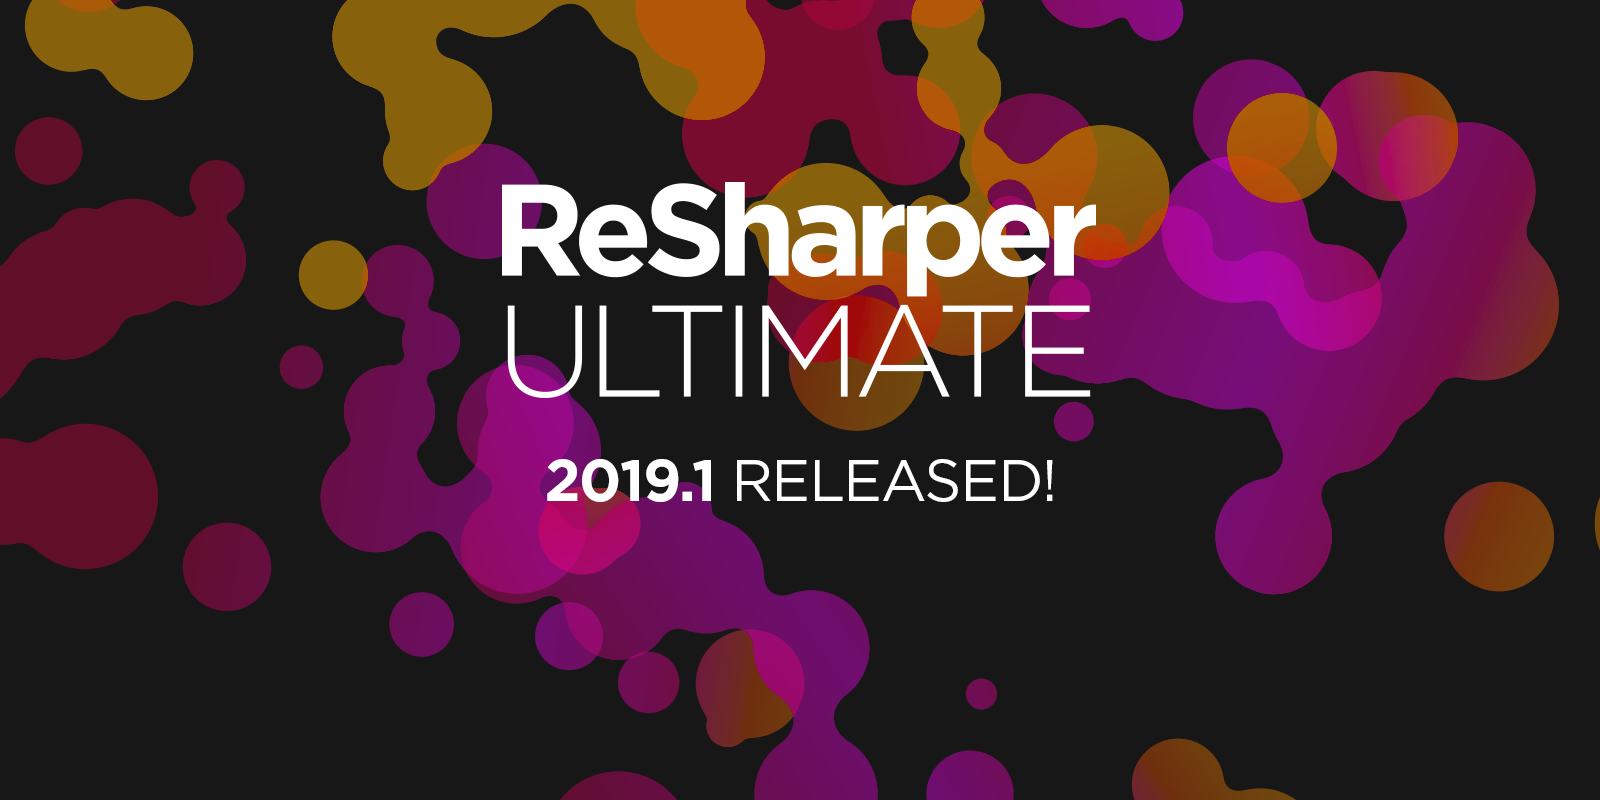 ReSharper Ultimate 2019.1 est maintenant disponible